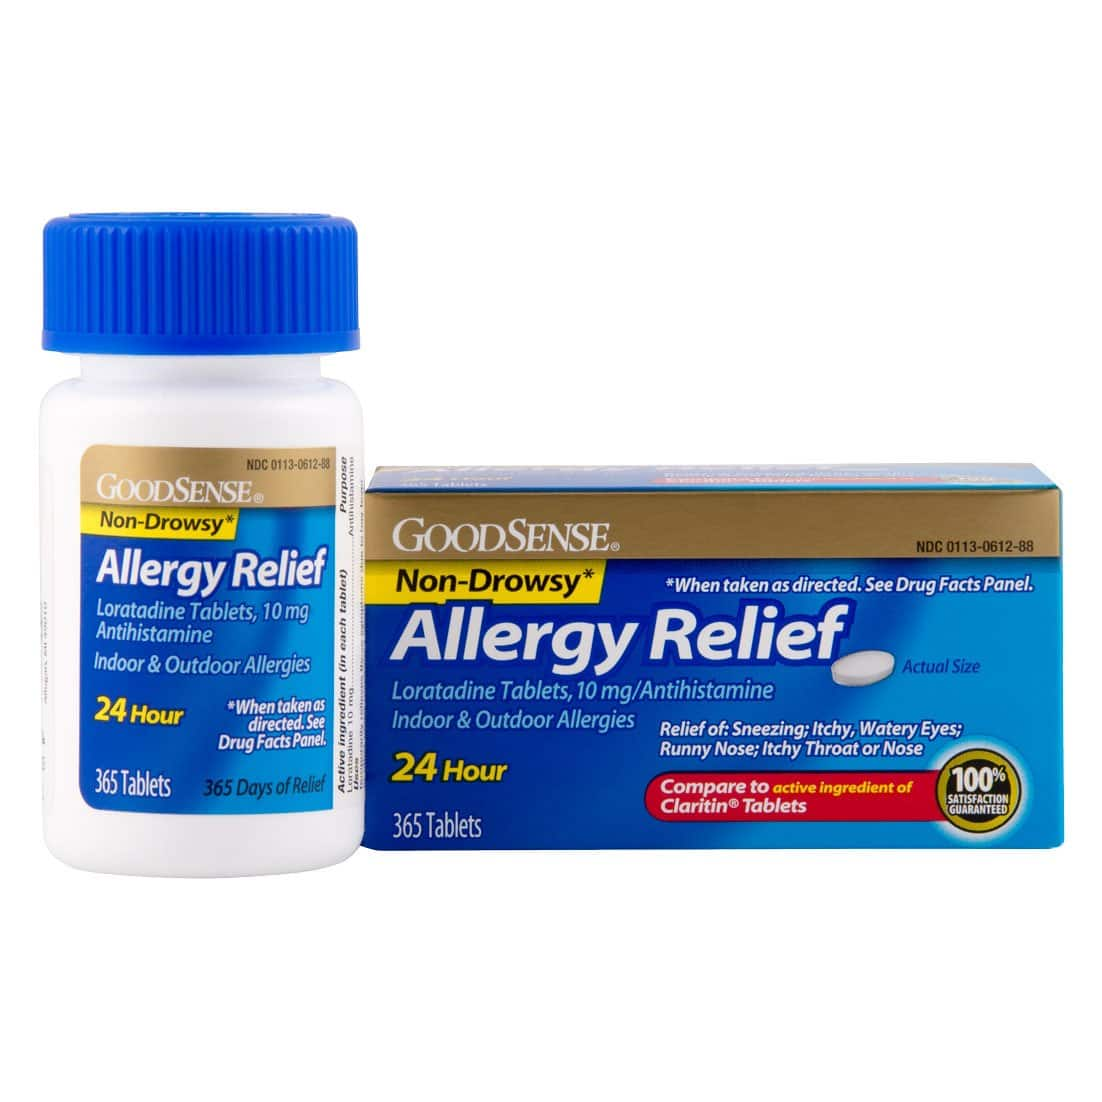 365-Count GoodSense Allergy Relief Loratadine Tablets $10.44 w/ S&S + Free S/H